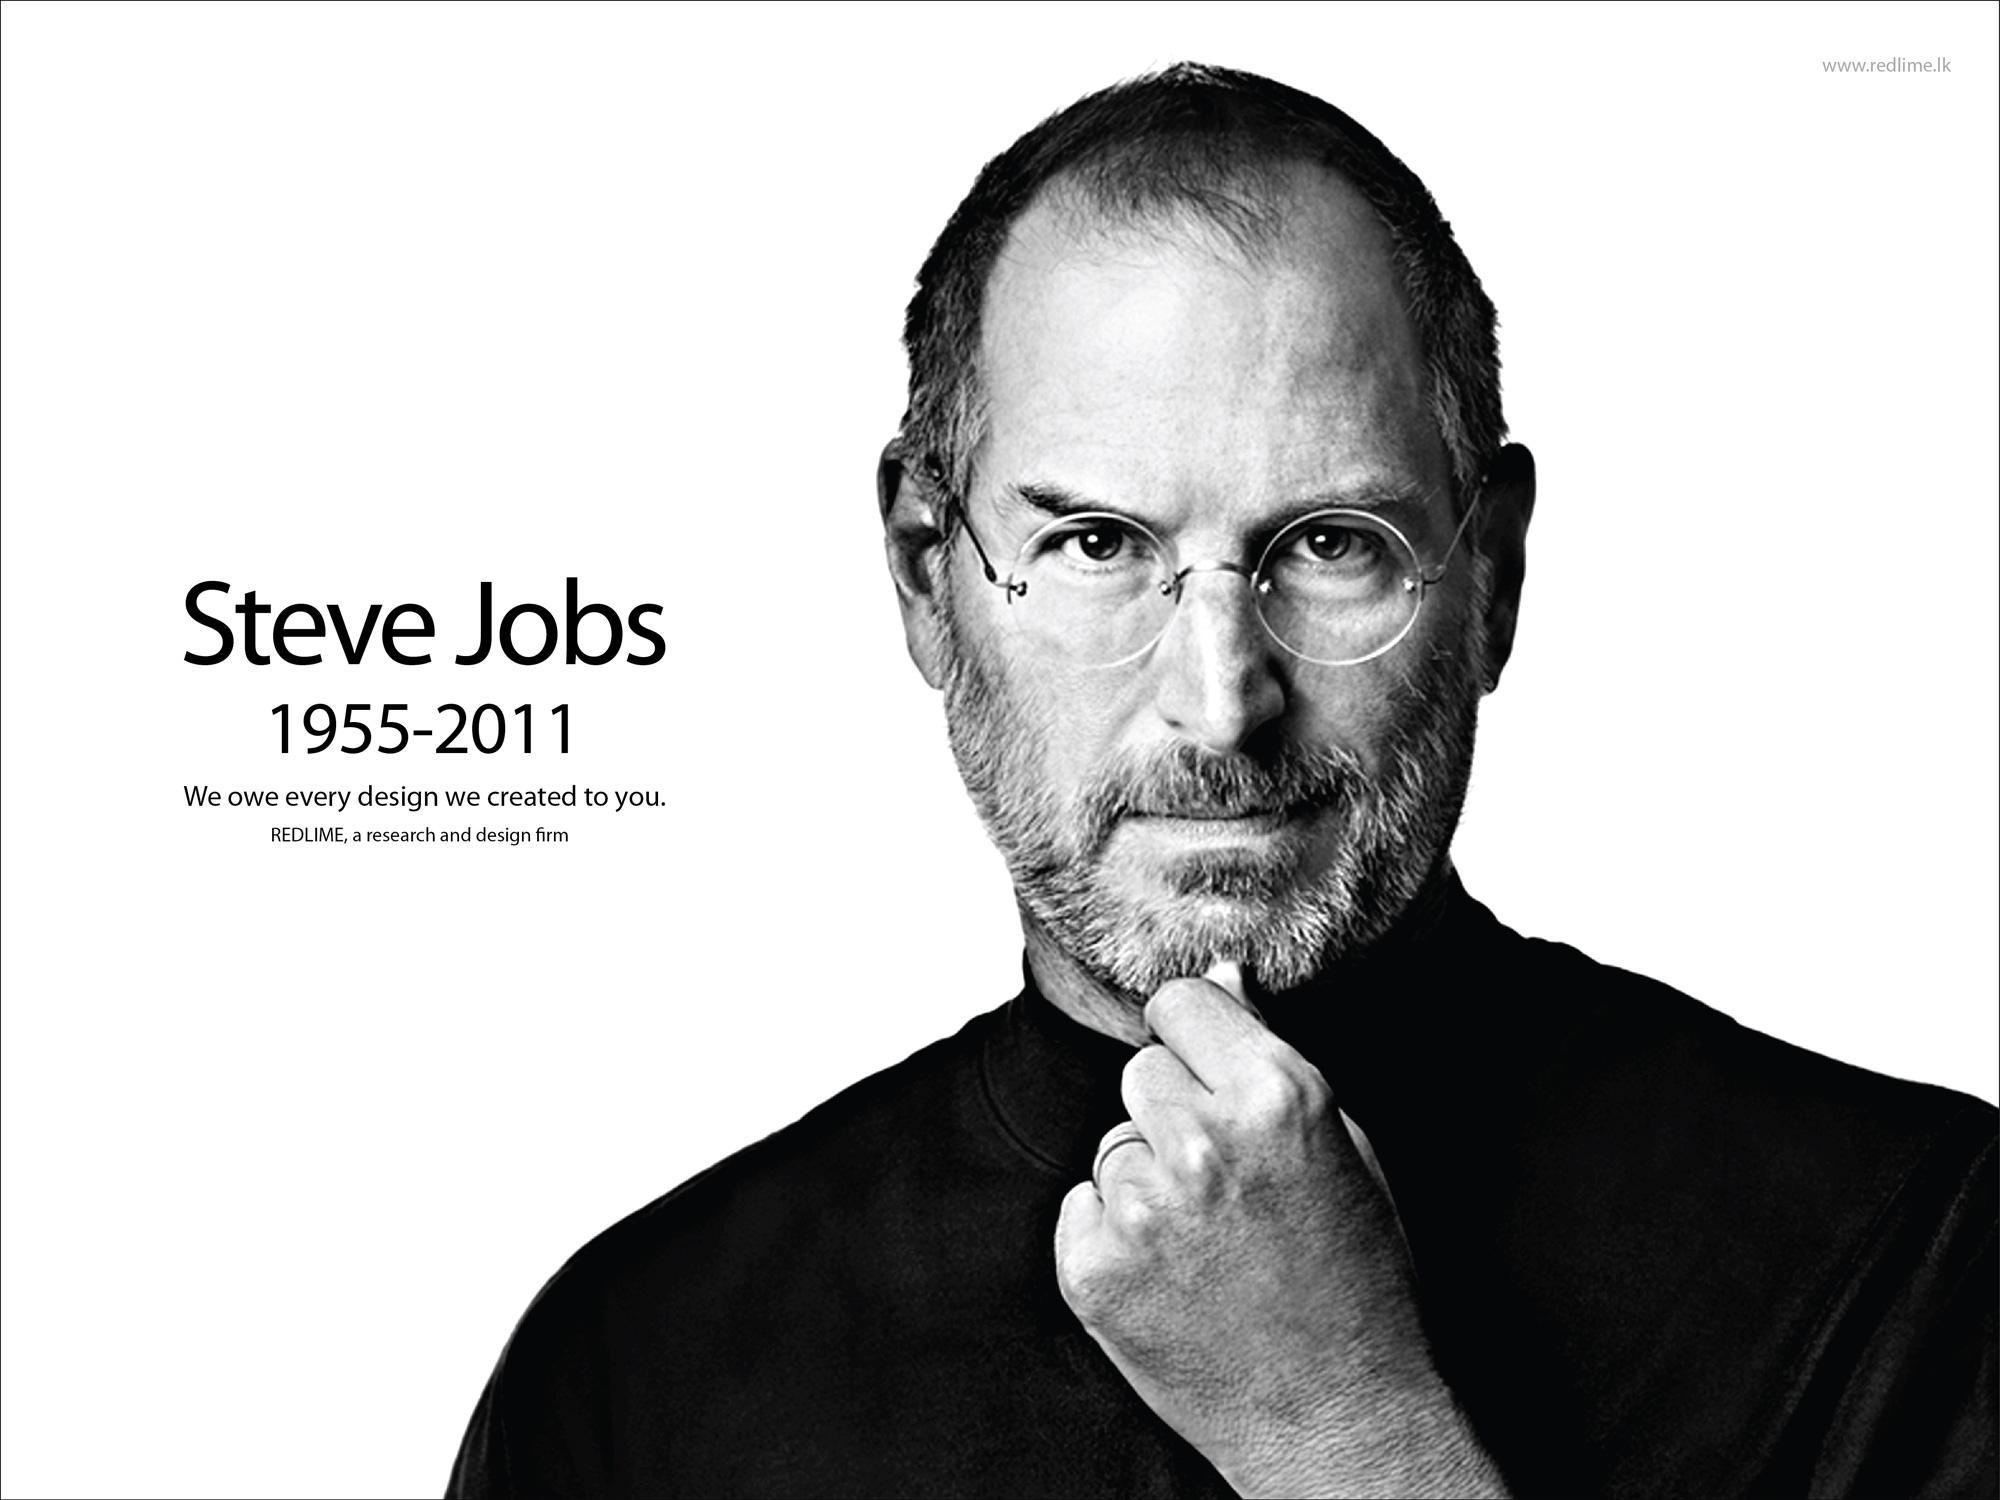 Should Steve Jobs be on a stamp?